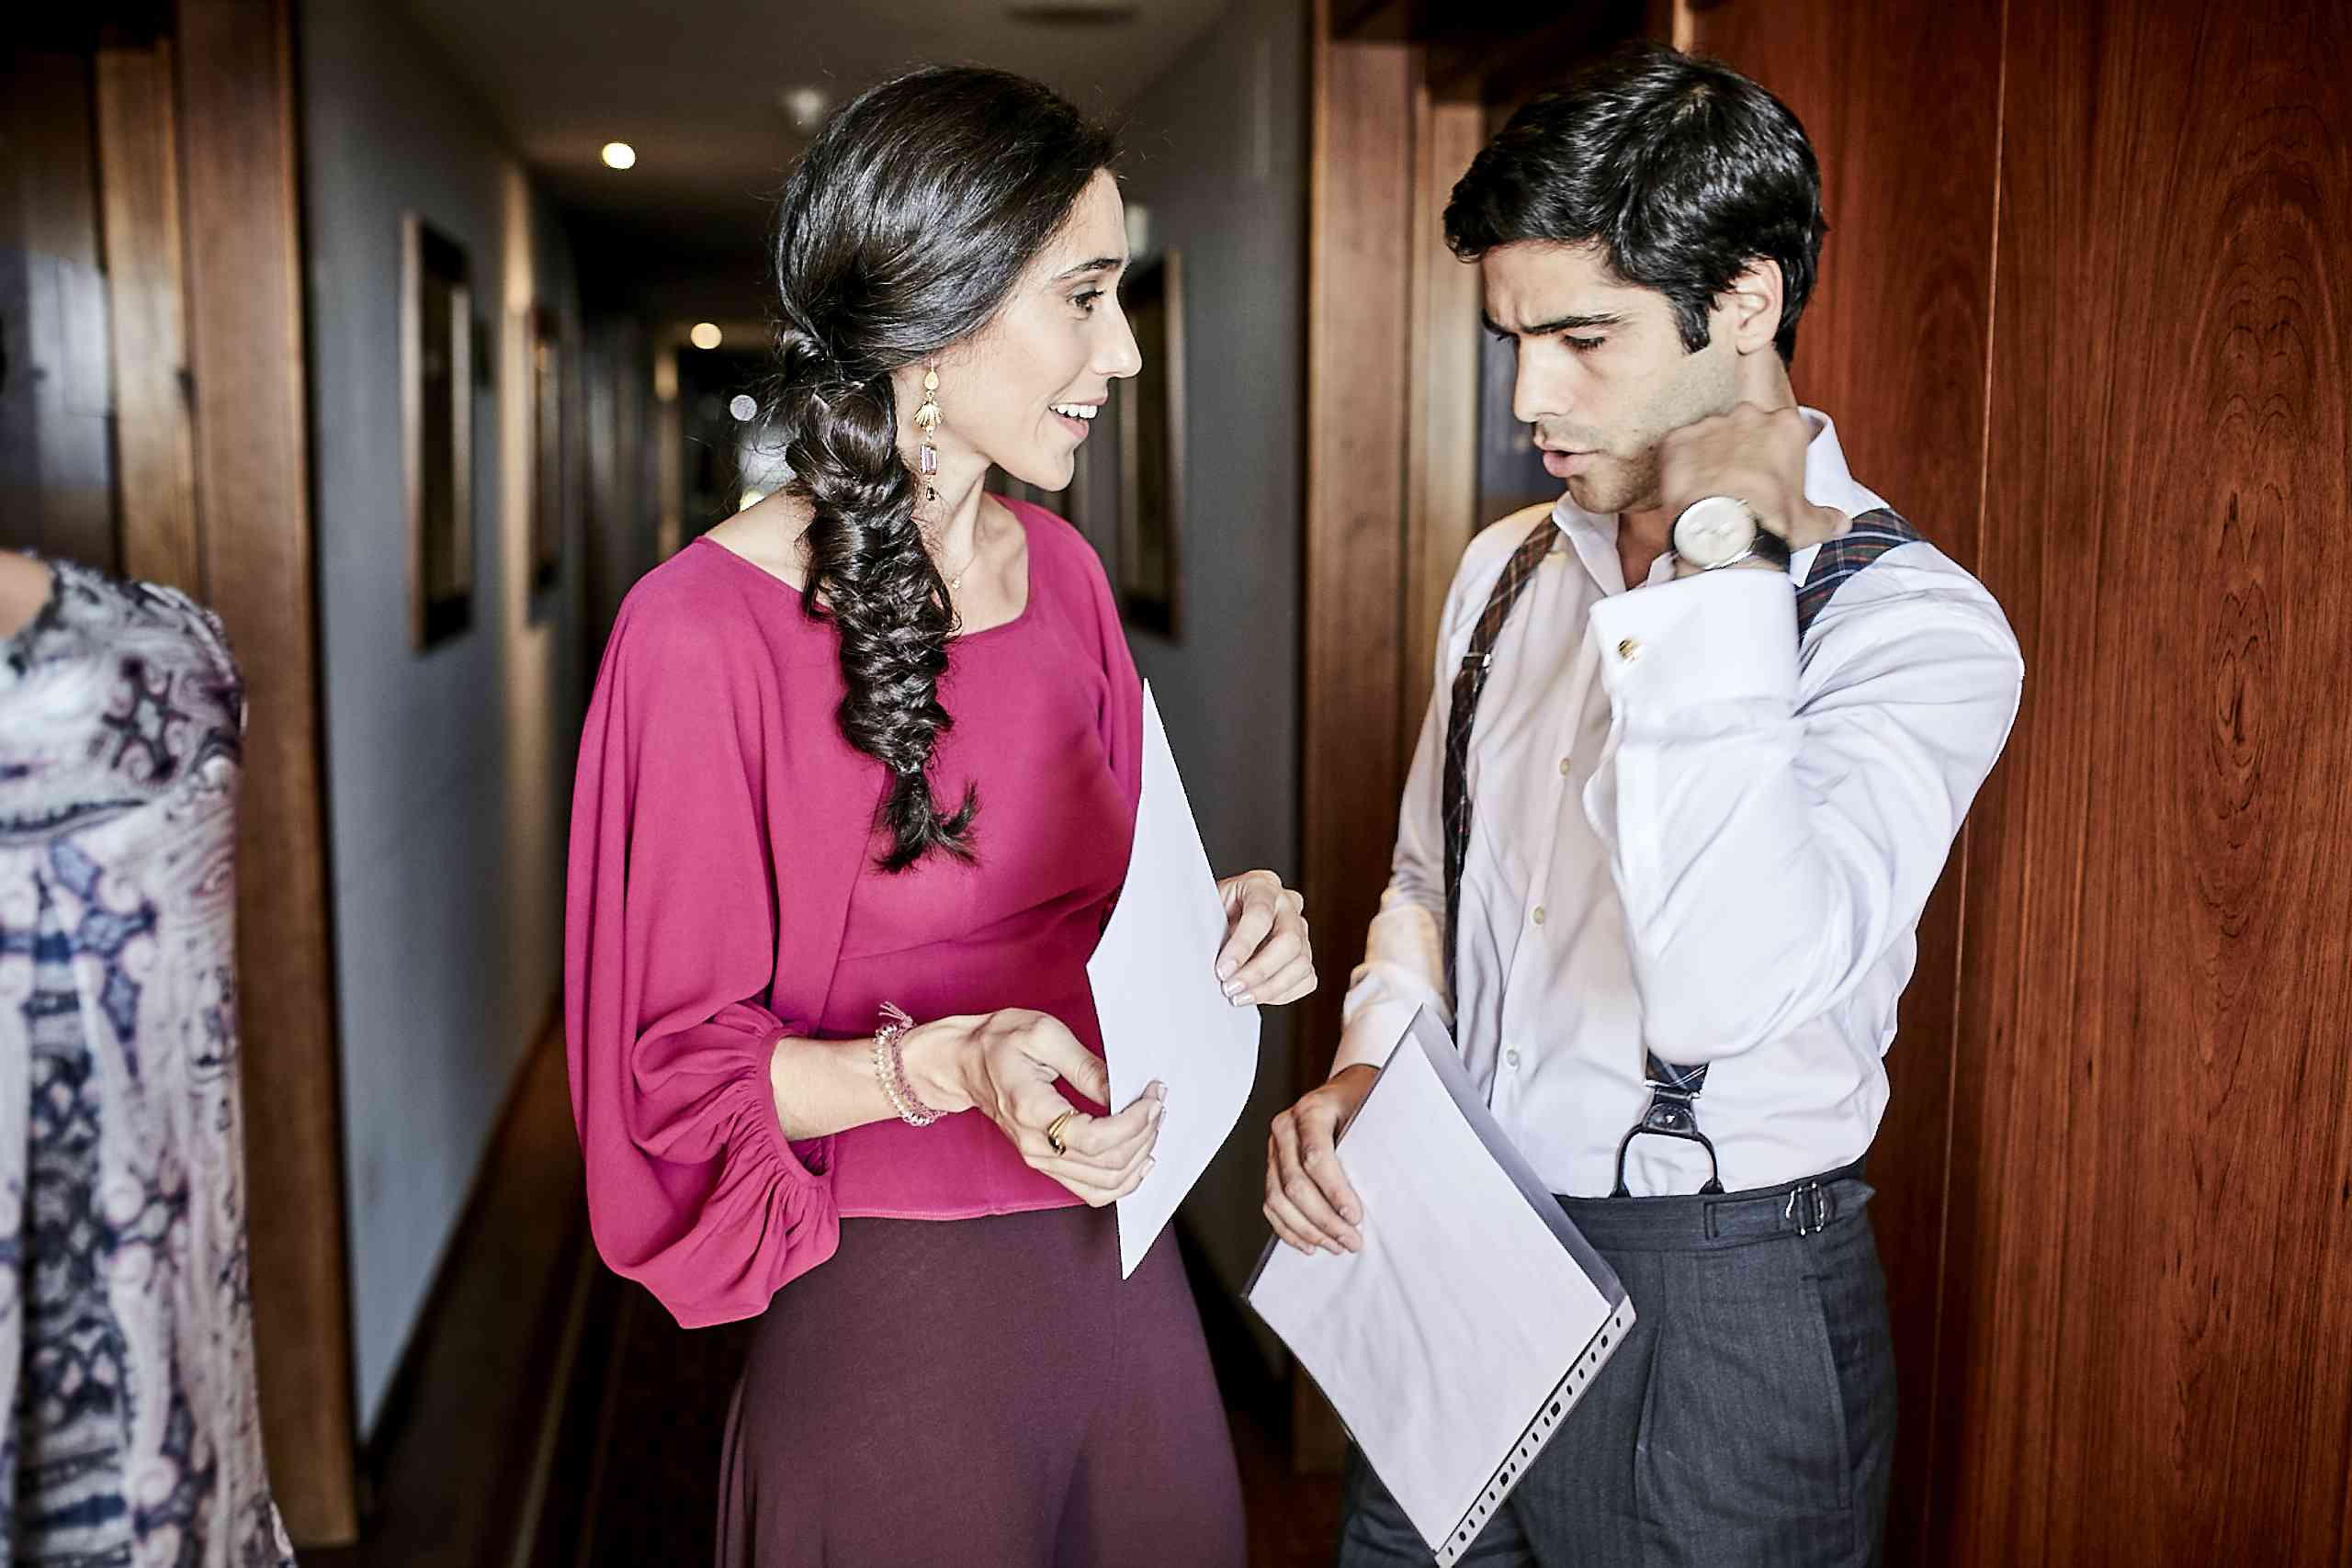 Man and woman discussing paperwork